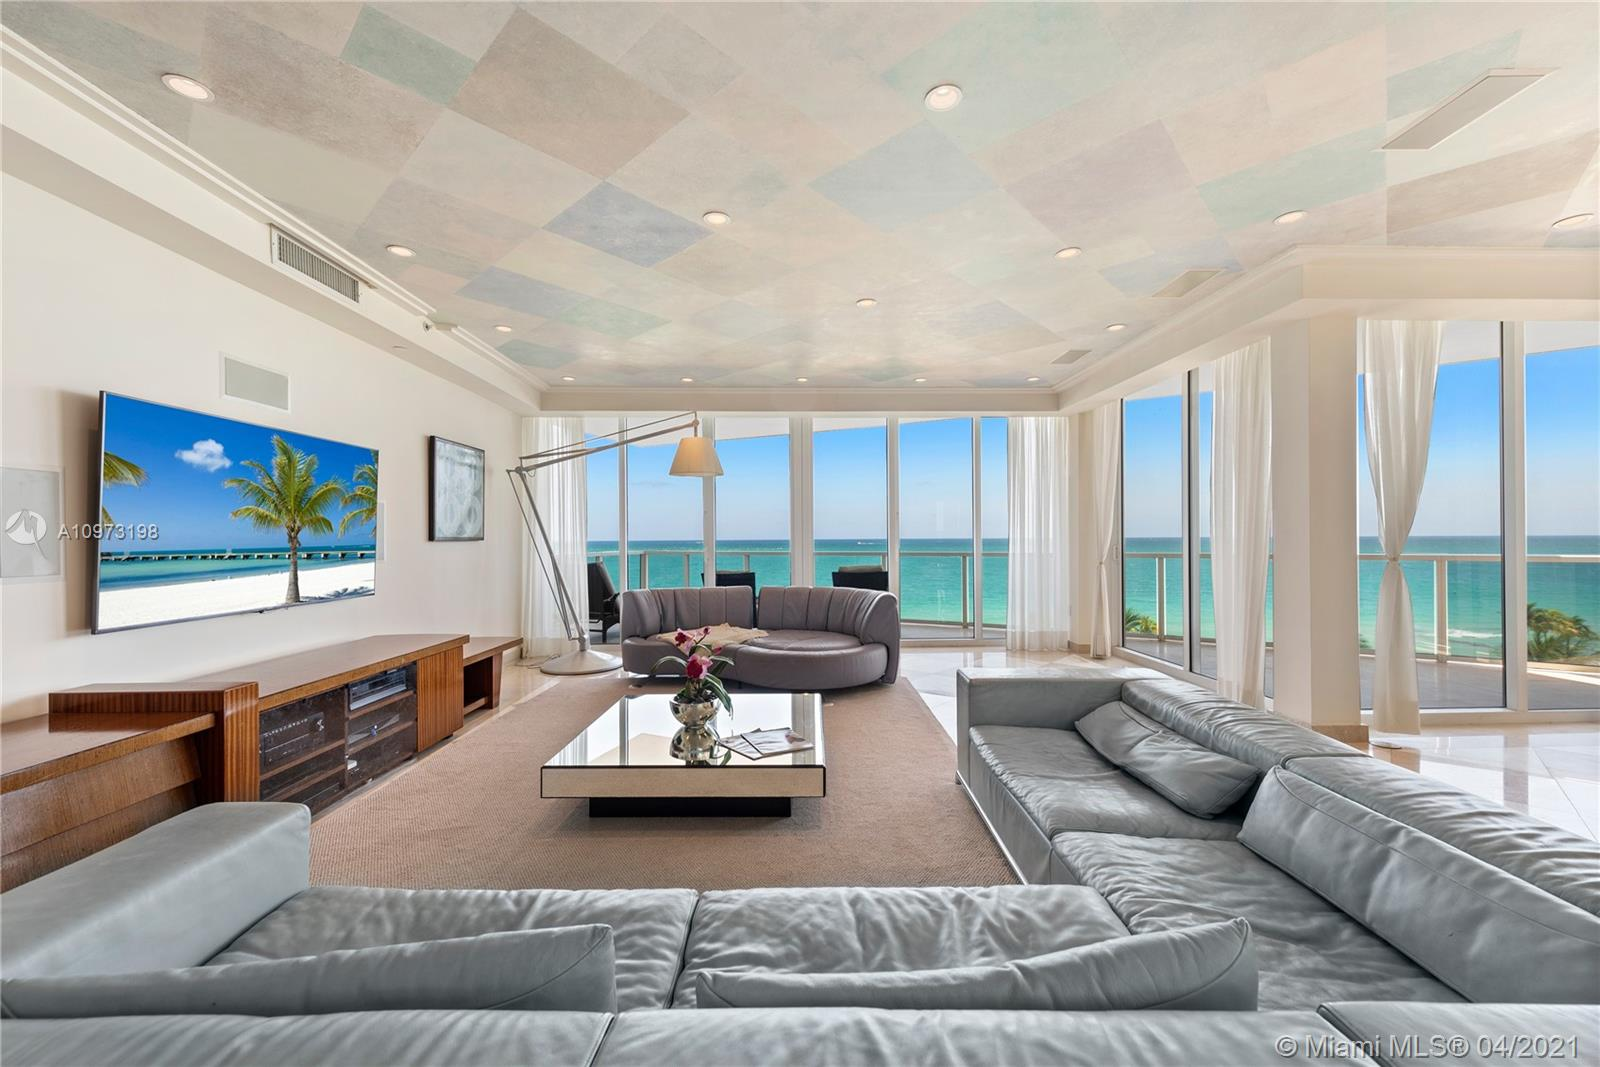 With over 6,000 sq ft, 8 bedrooms (2 master bedrooms, 4 large suites, and 2 staff bedrooms) 9.5 baths, this property represents a rare opportunity ideal for a large family. Special features include a massive oceanfront master suite with his and her bathrooms and large walk in closets, VIP guest suite, an expansive oceanfront living room with sunrise views, massive Poggenpohl kitchen with breakfast area, large bay facing club room with separate chef kitchen/bar and sunset views. Located in world renowned Bal Harbour, directly on the beach, the Bellini is a luxurious boutique full service building with private restaurant, gym and spa. Contact the listing agent to show with 24 hour notice.